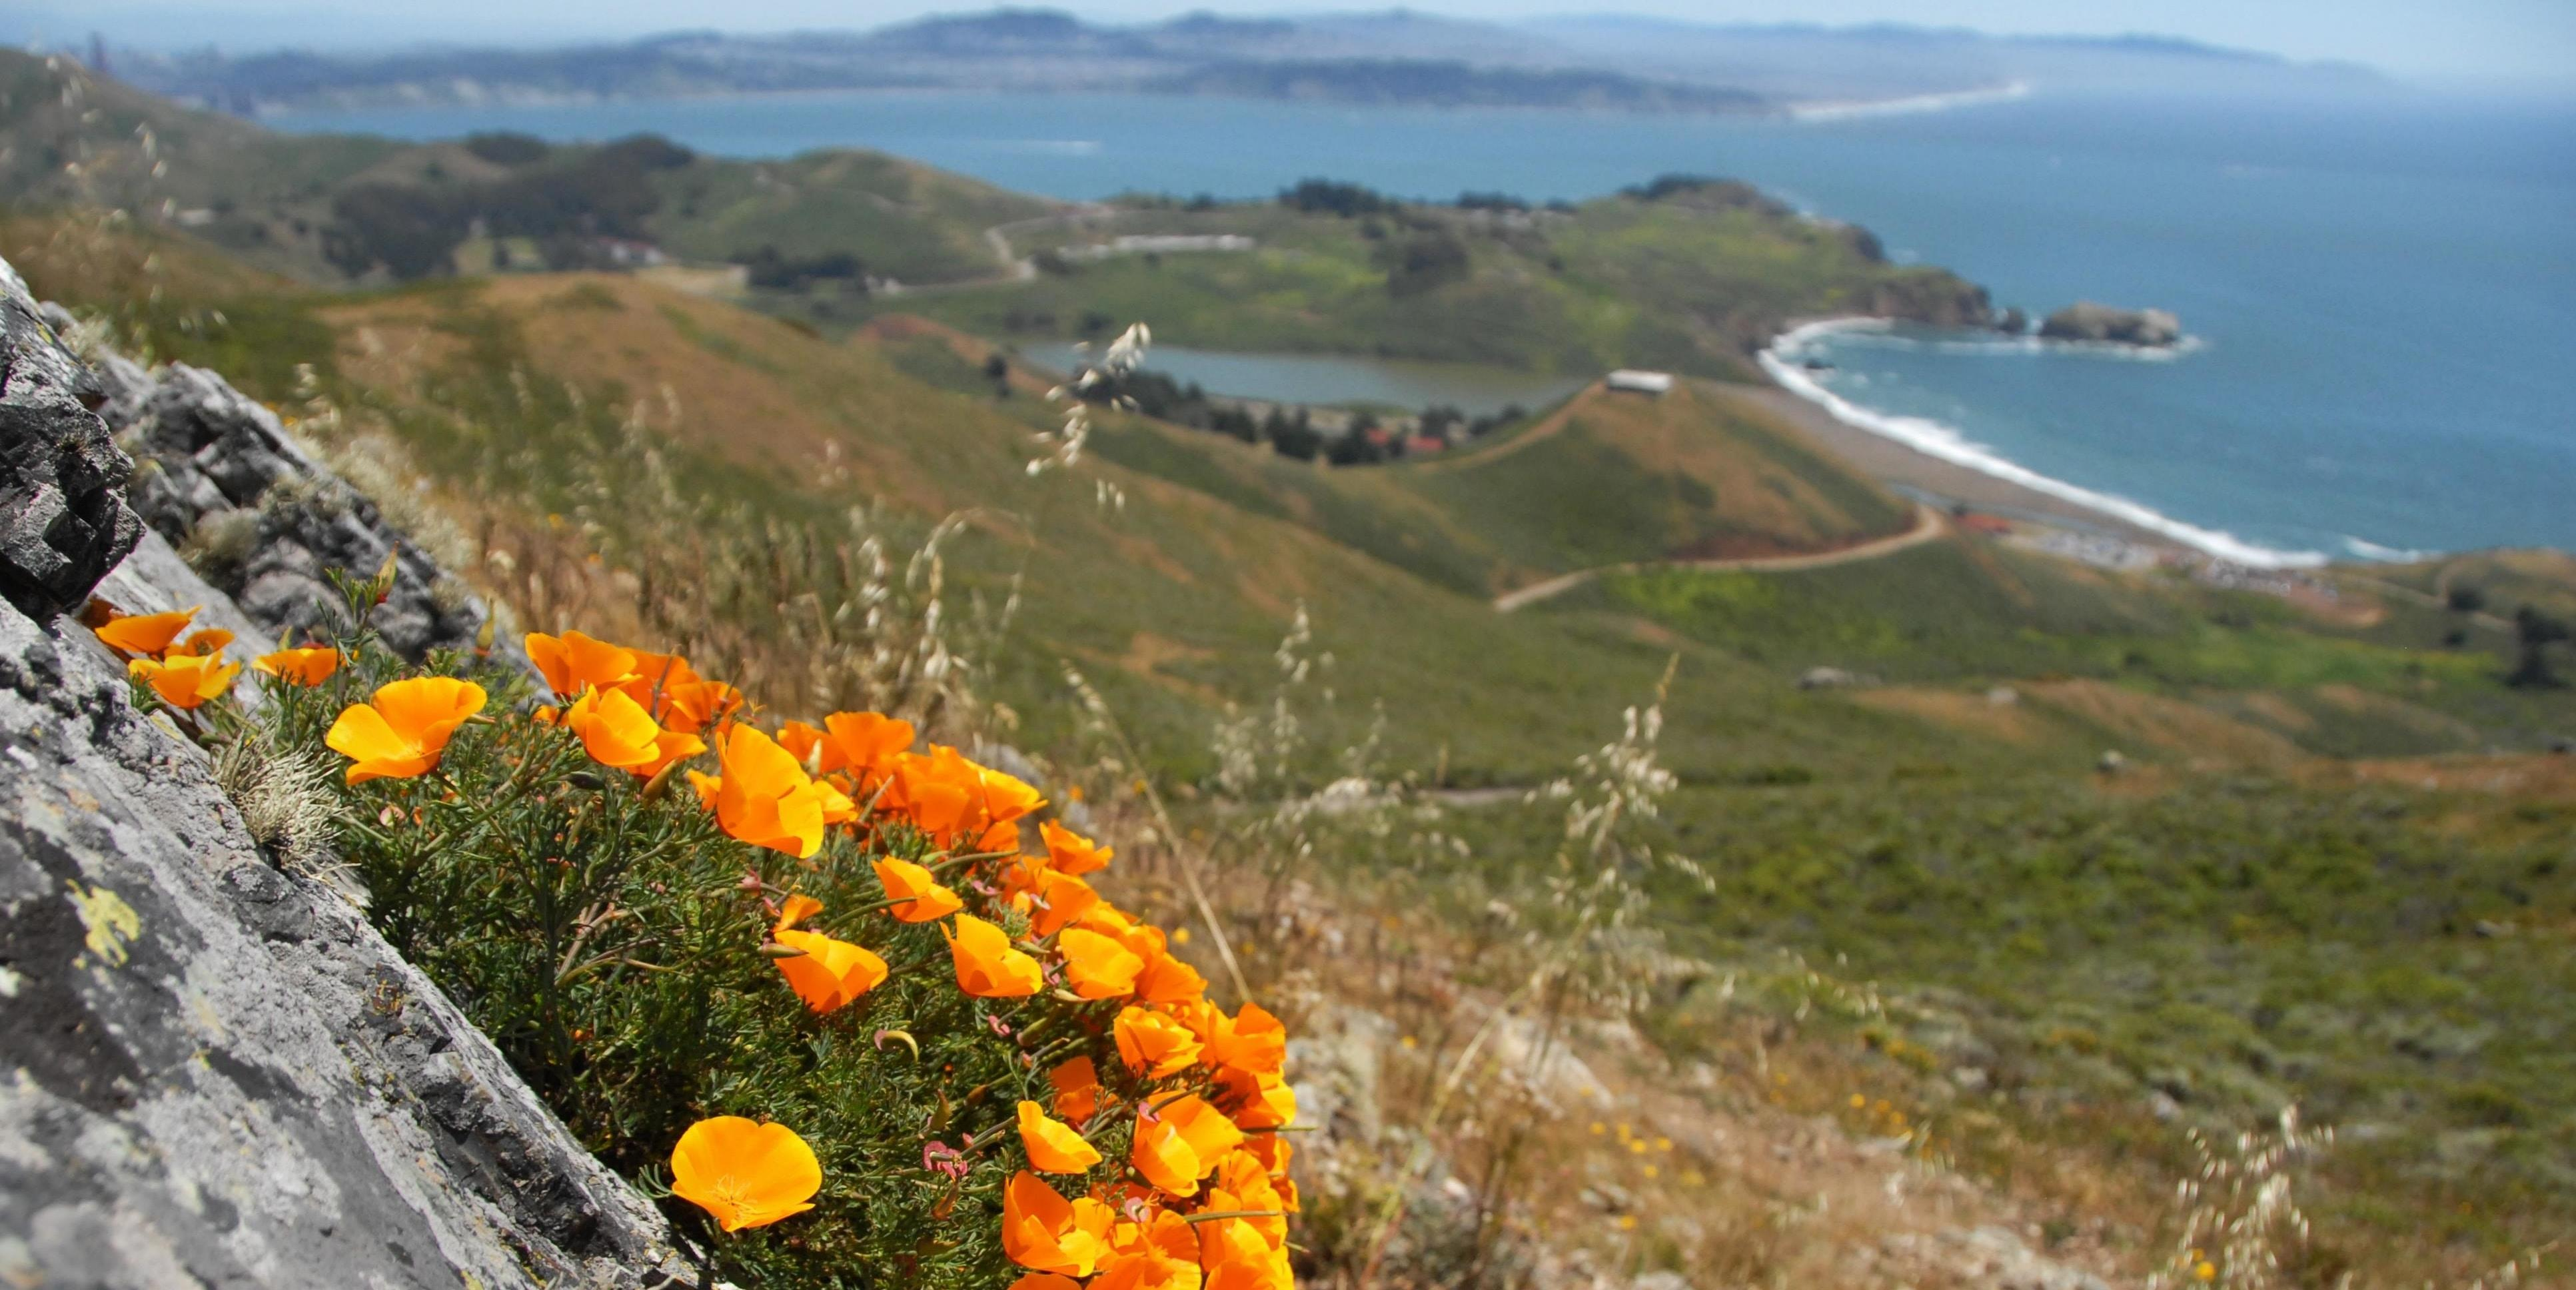 Poppies overlooking Fort Cronkhite and Rodeo Beach